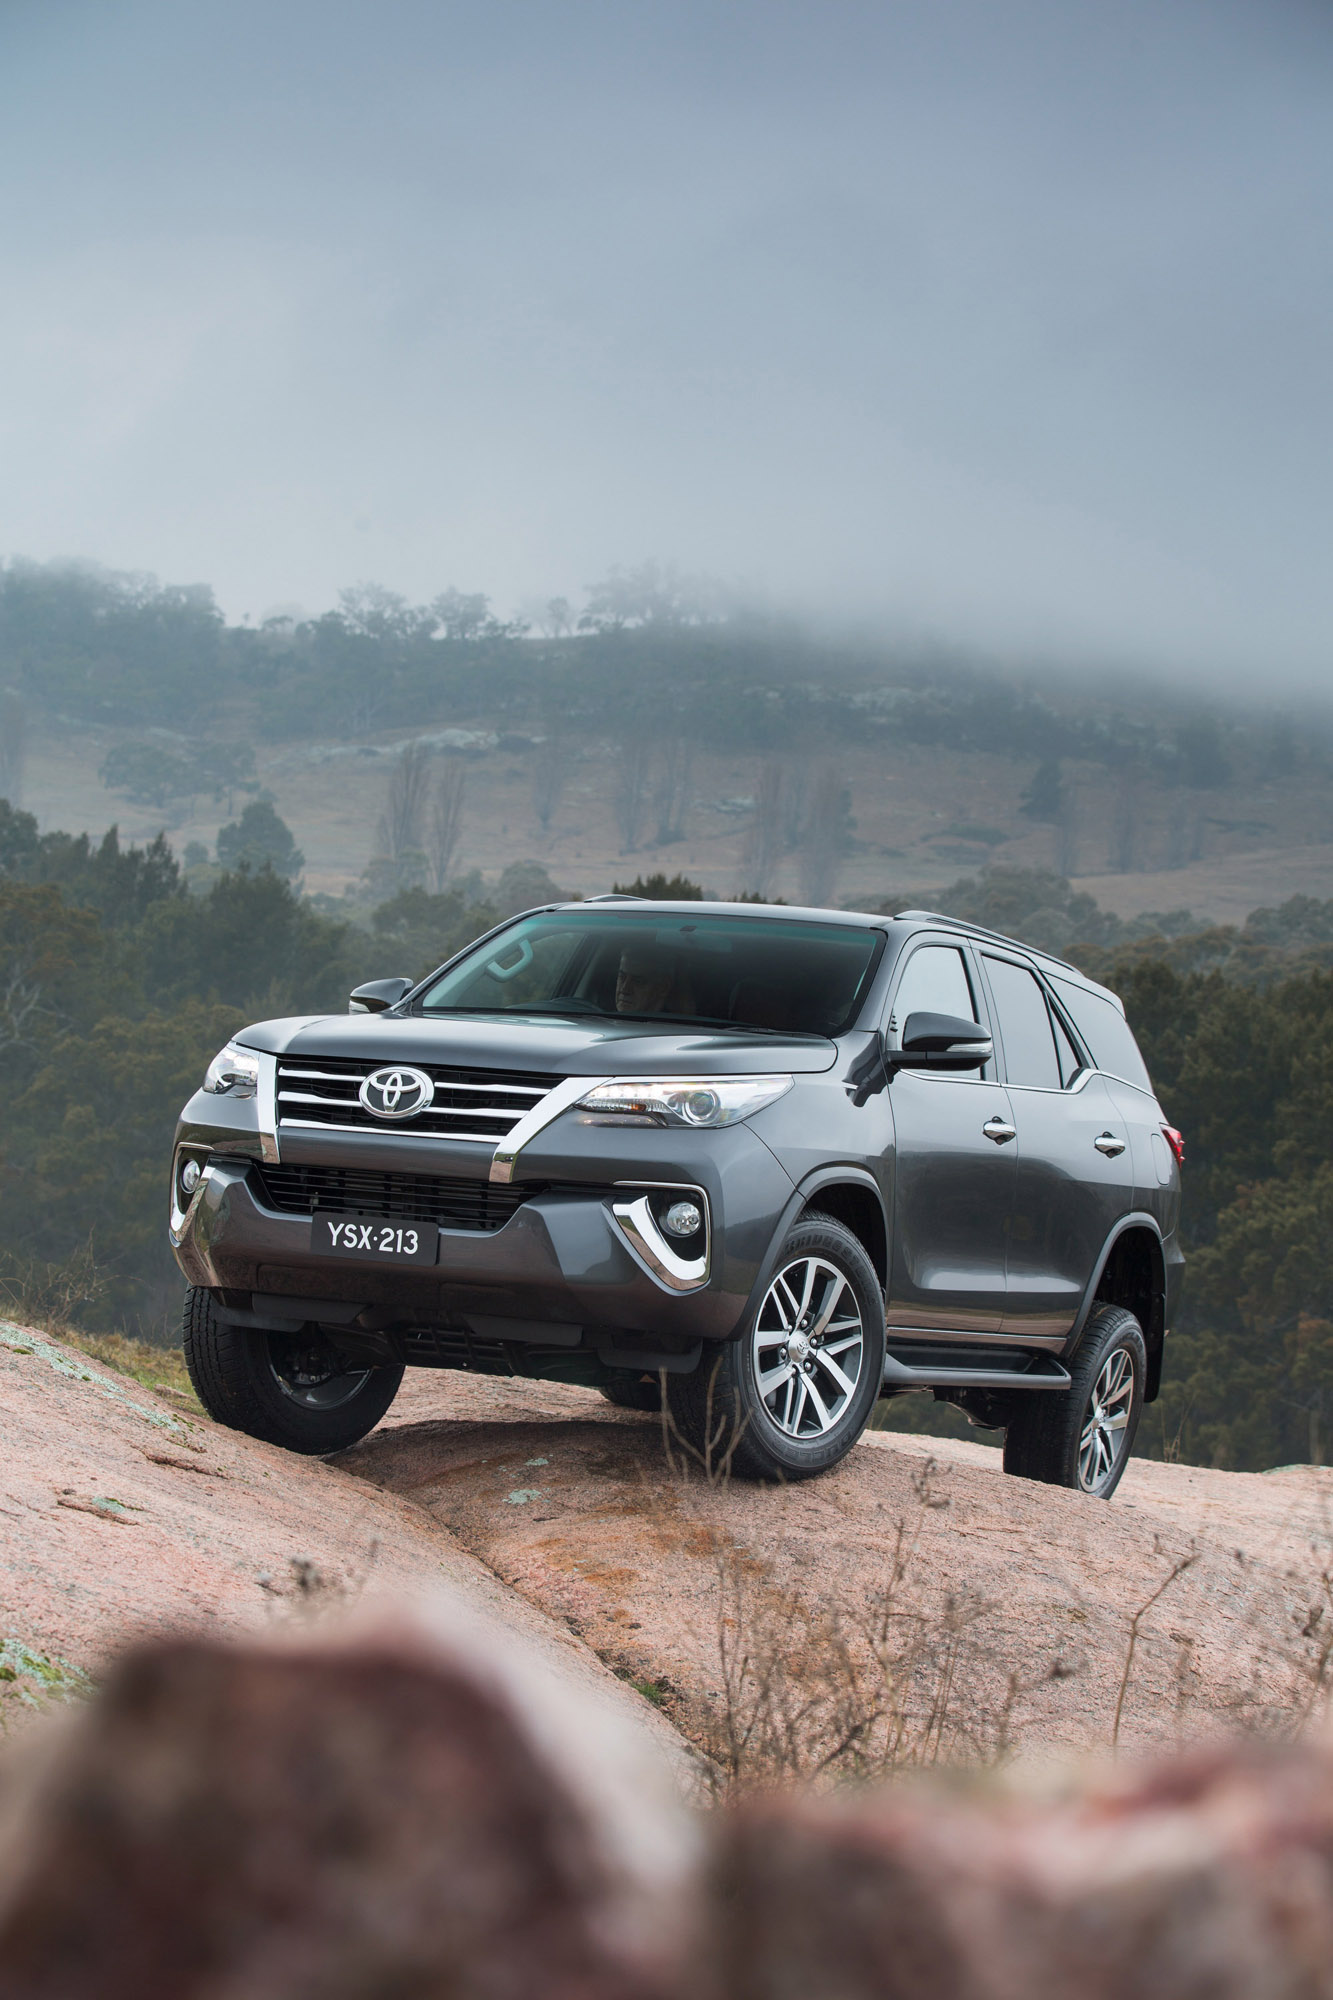 Toyota Fortuner Is The New Suv In Company S Line Up